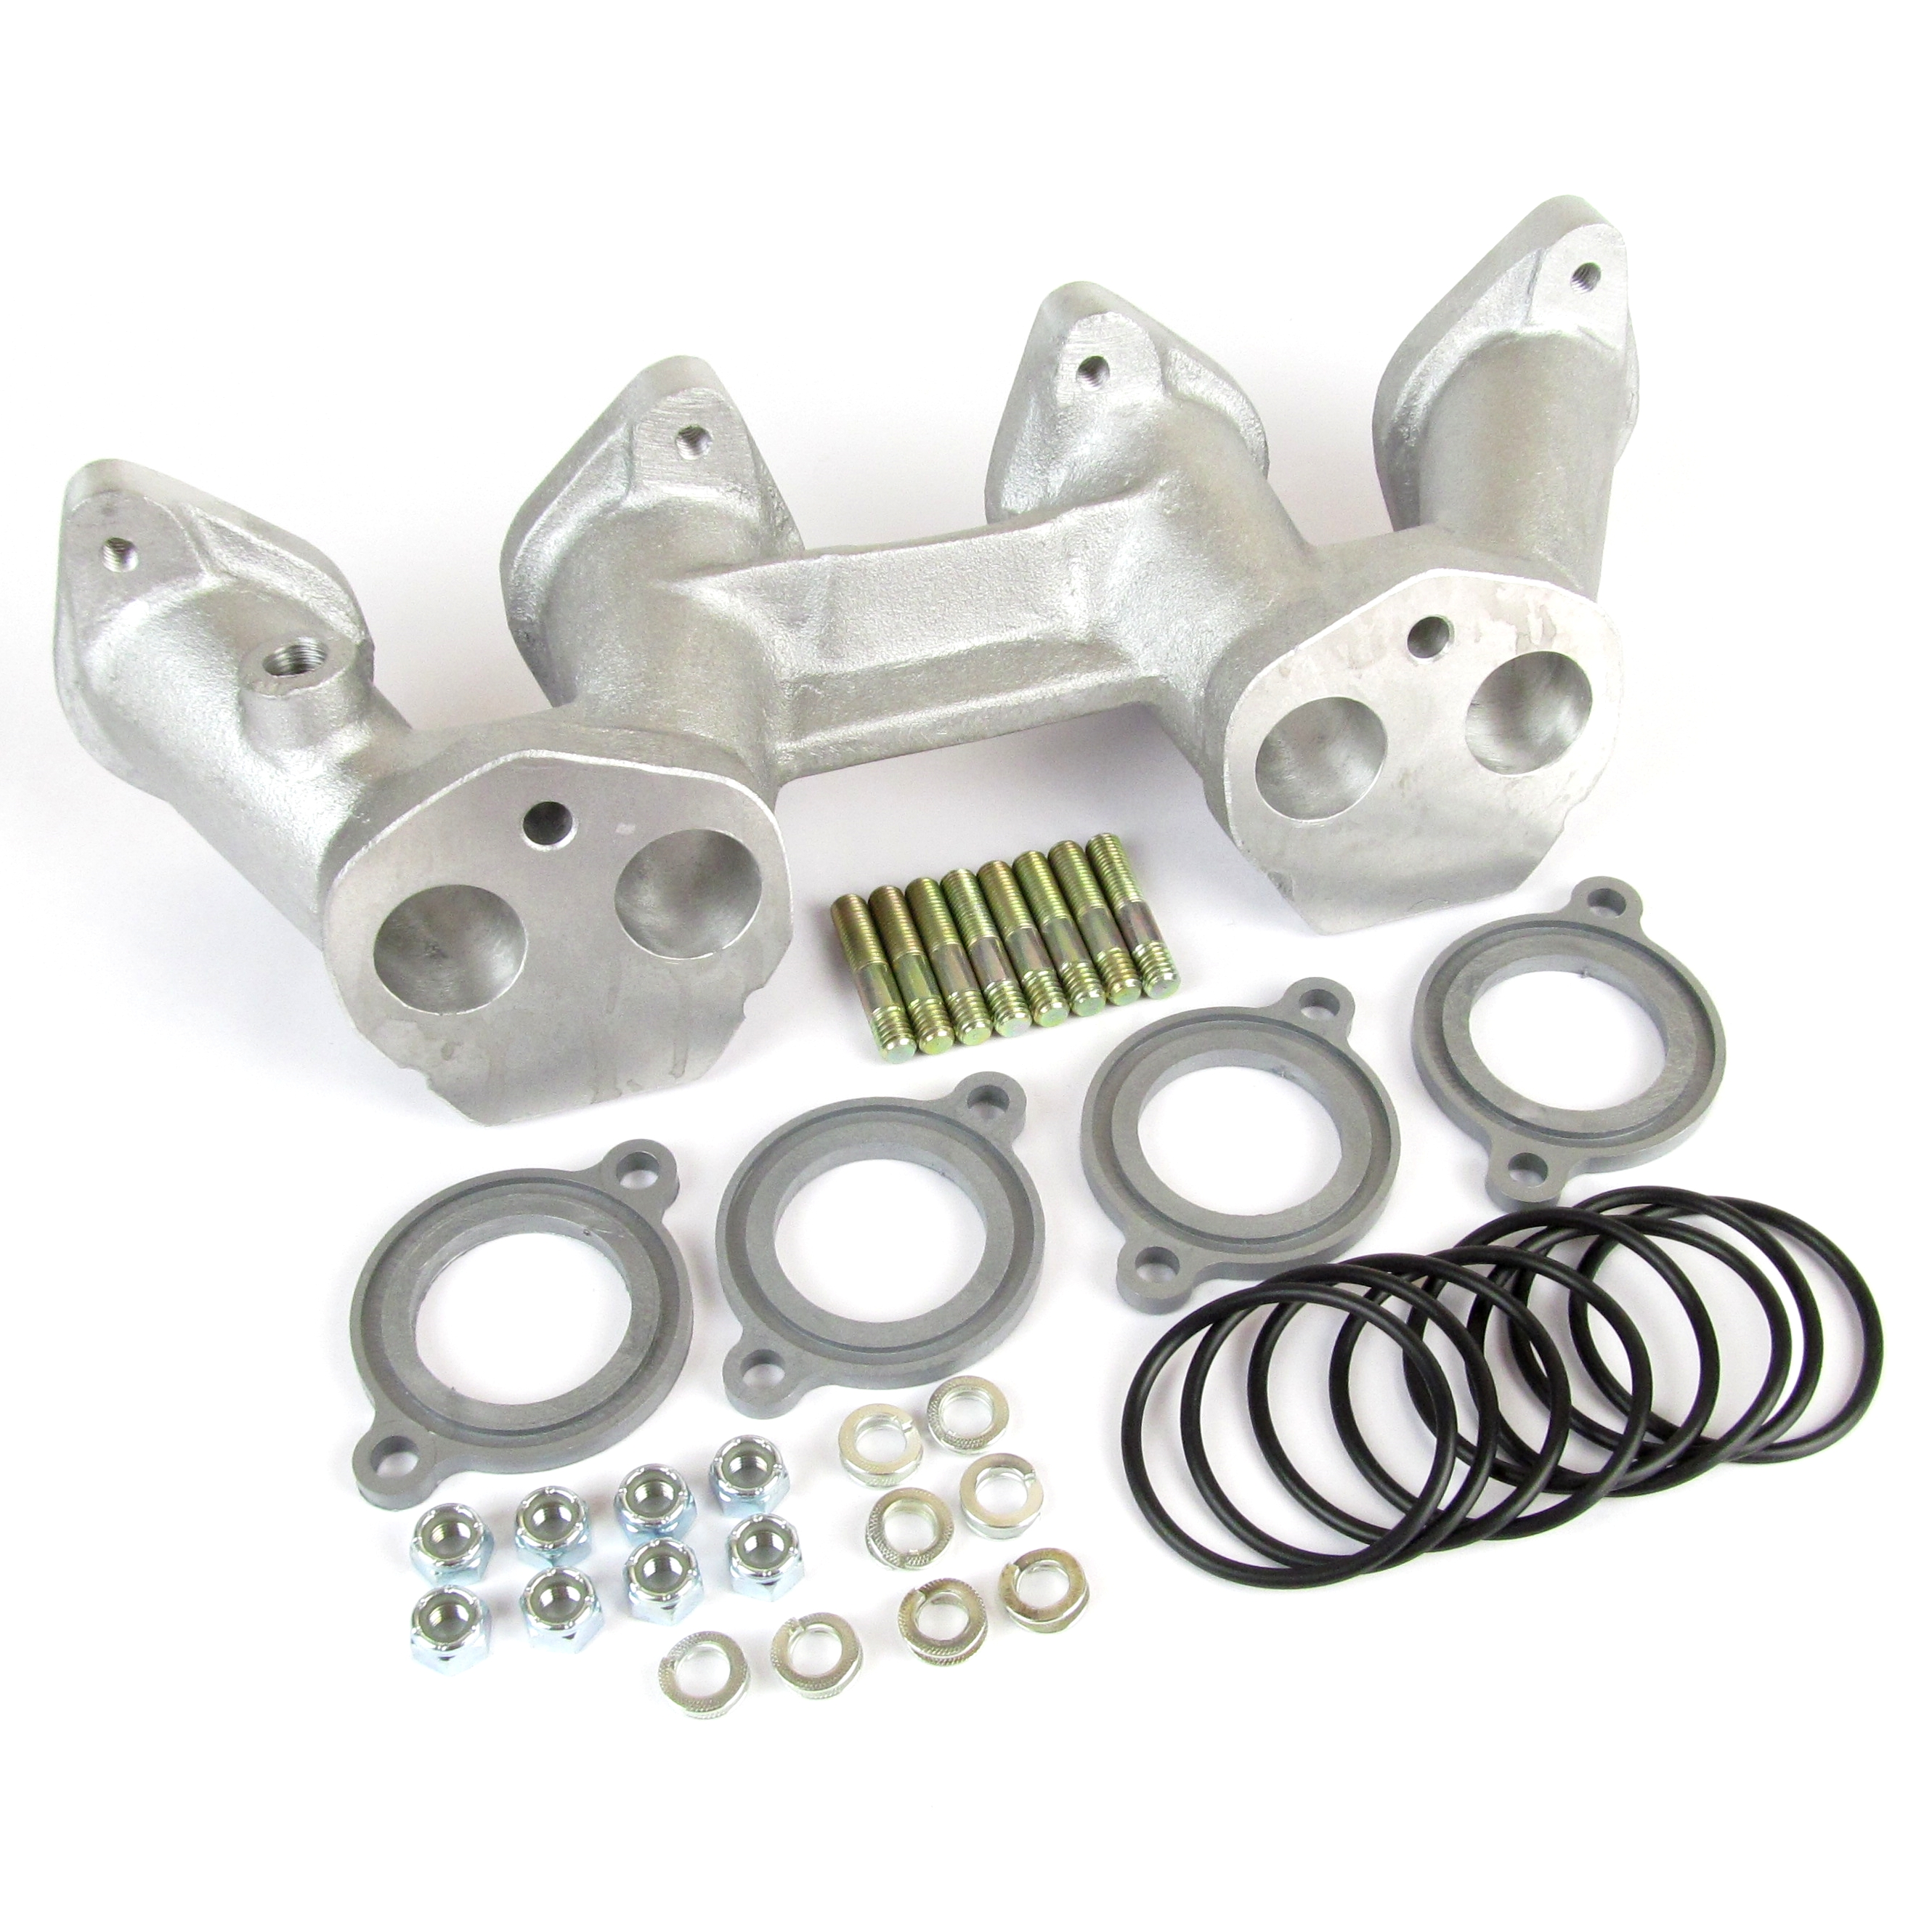 DATSUN / NISSAN 100A / 120A INLET MANIFOLD WEBER / DELLORTO 40 DHLA / DCOE CARBONS